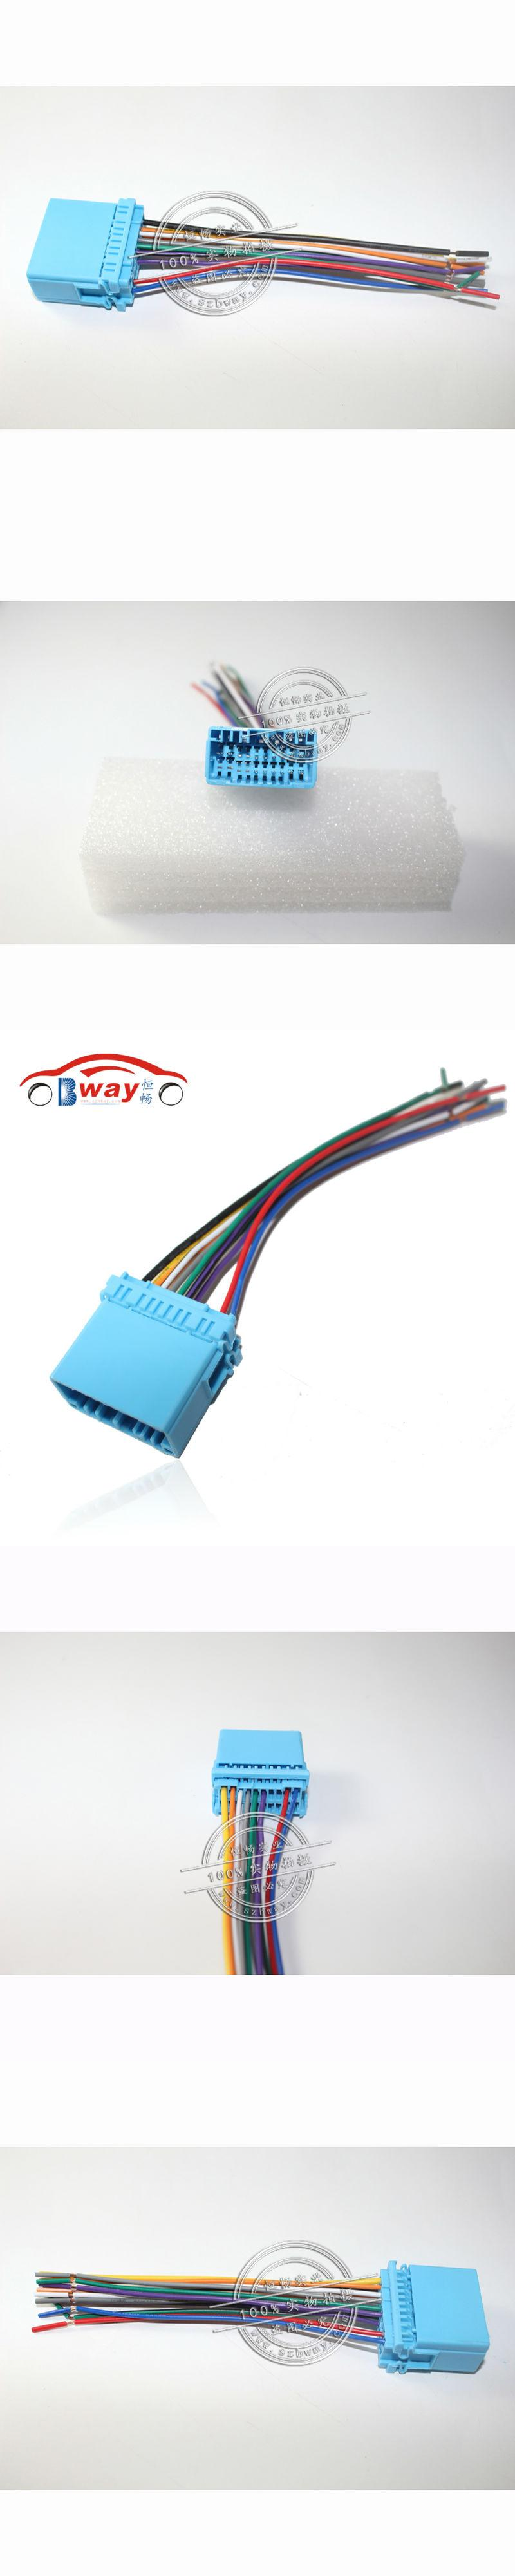 Car Stereo Female Iso Radio Plug Power Adapter Wiring Harness Special For Suzuki Swift Grand Vitara Iso Harness Power Car Stereo Suzuki Swift Car Electronics